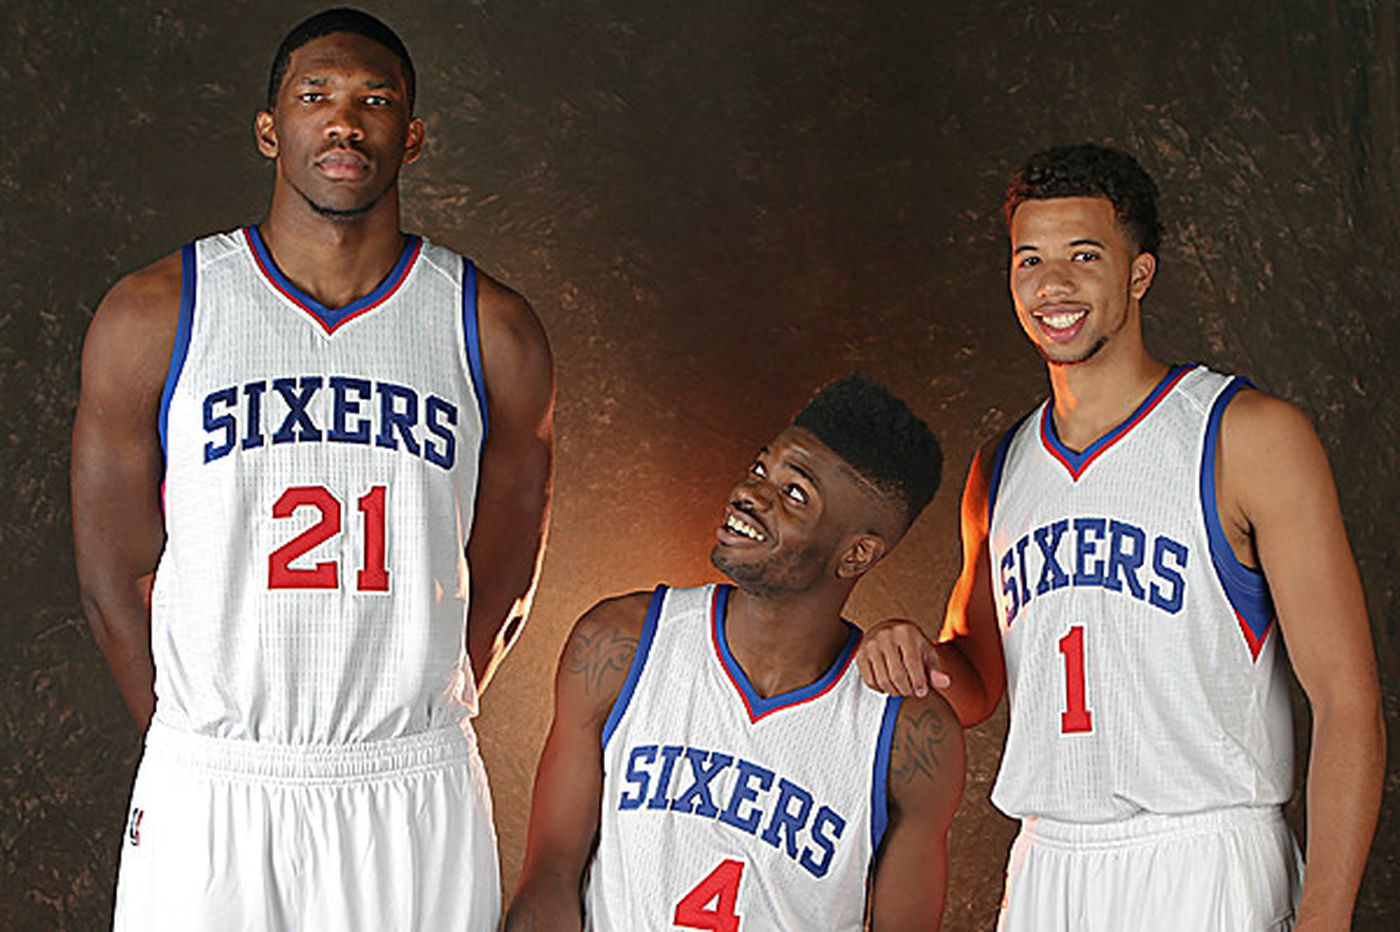 Carter-Williams, Noel and Embiid dream big